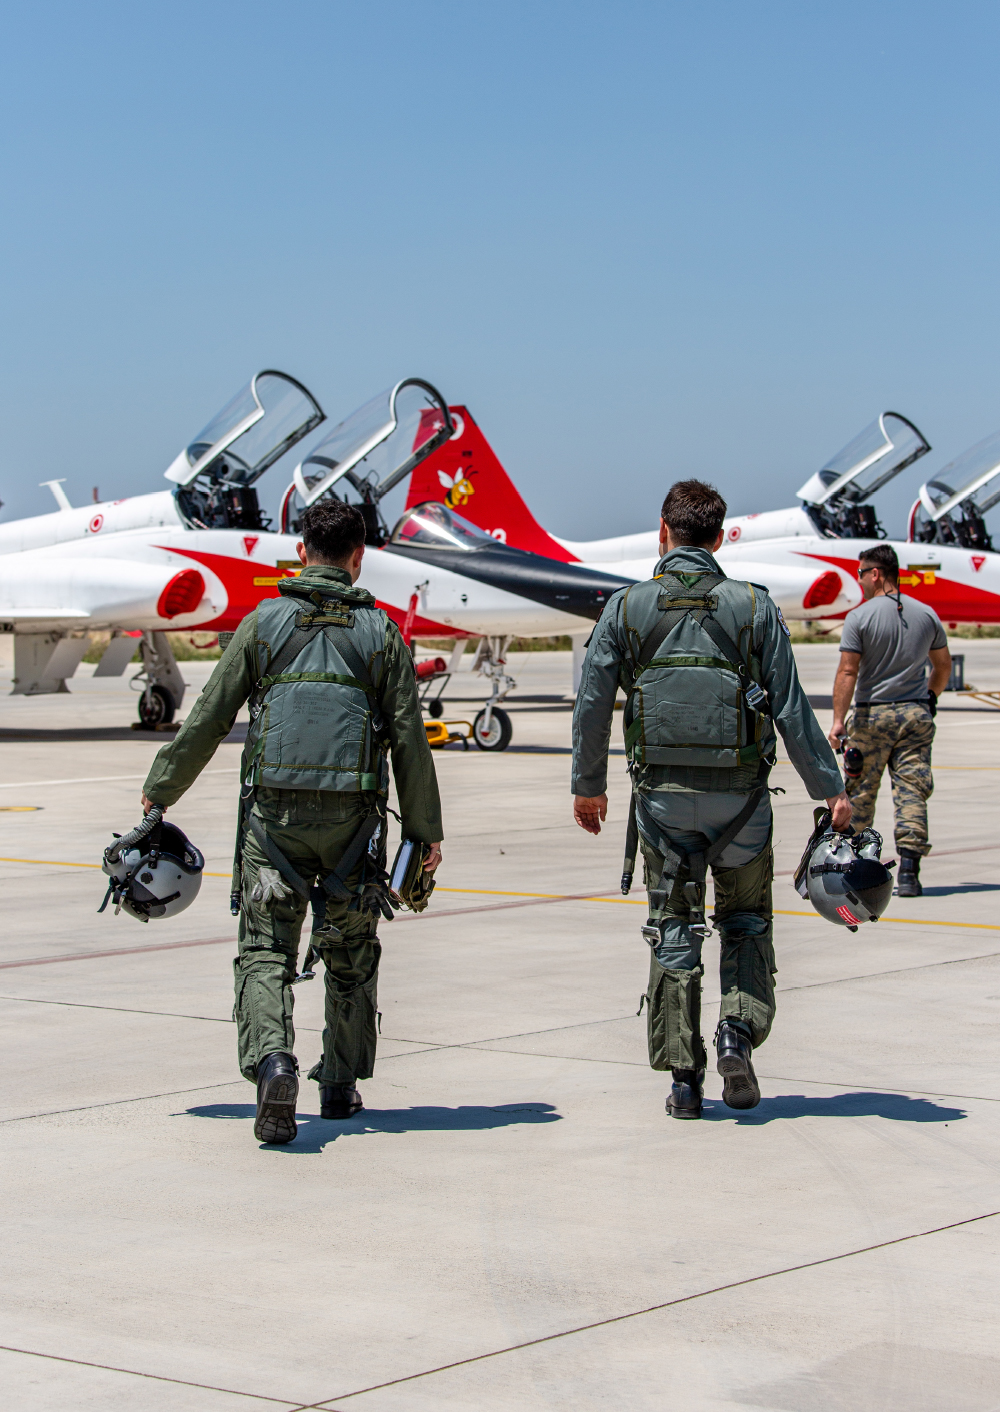 Initial Training For Combat Readiness Turkish Air Force Pilot Training Program